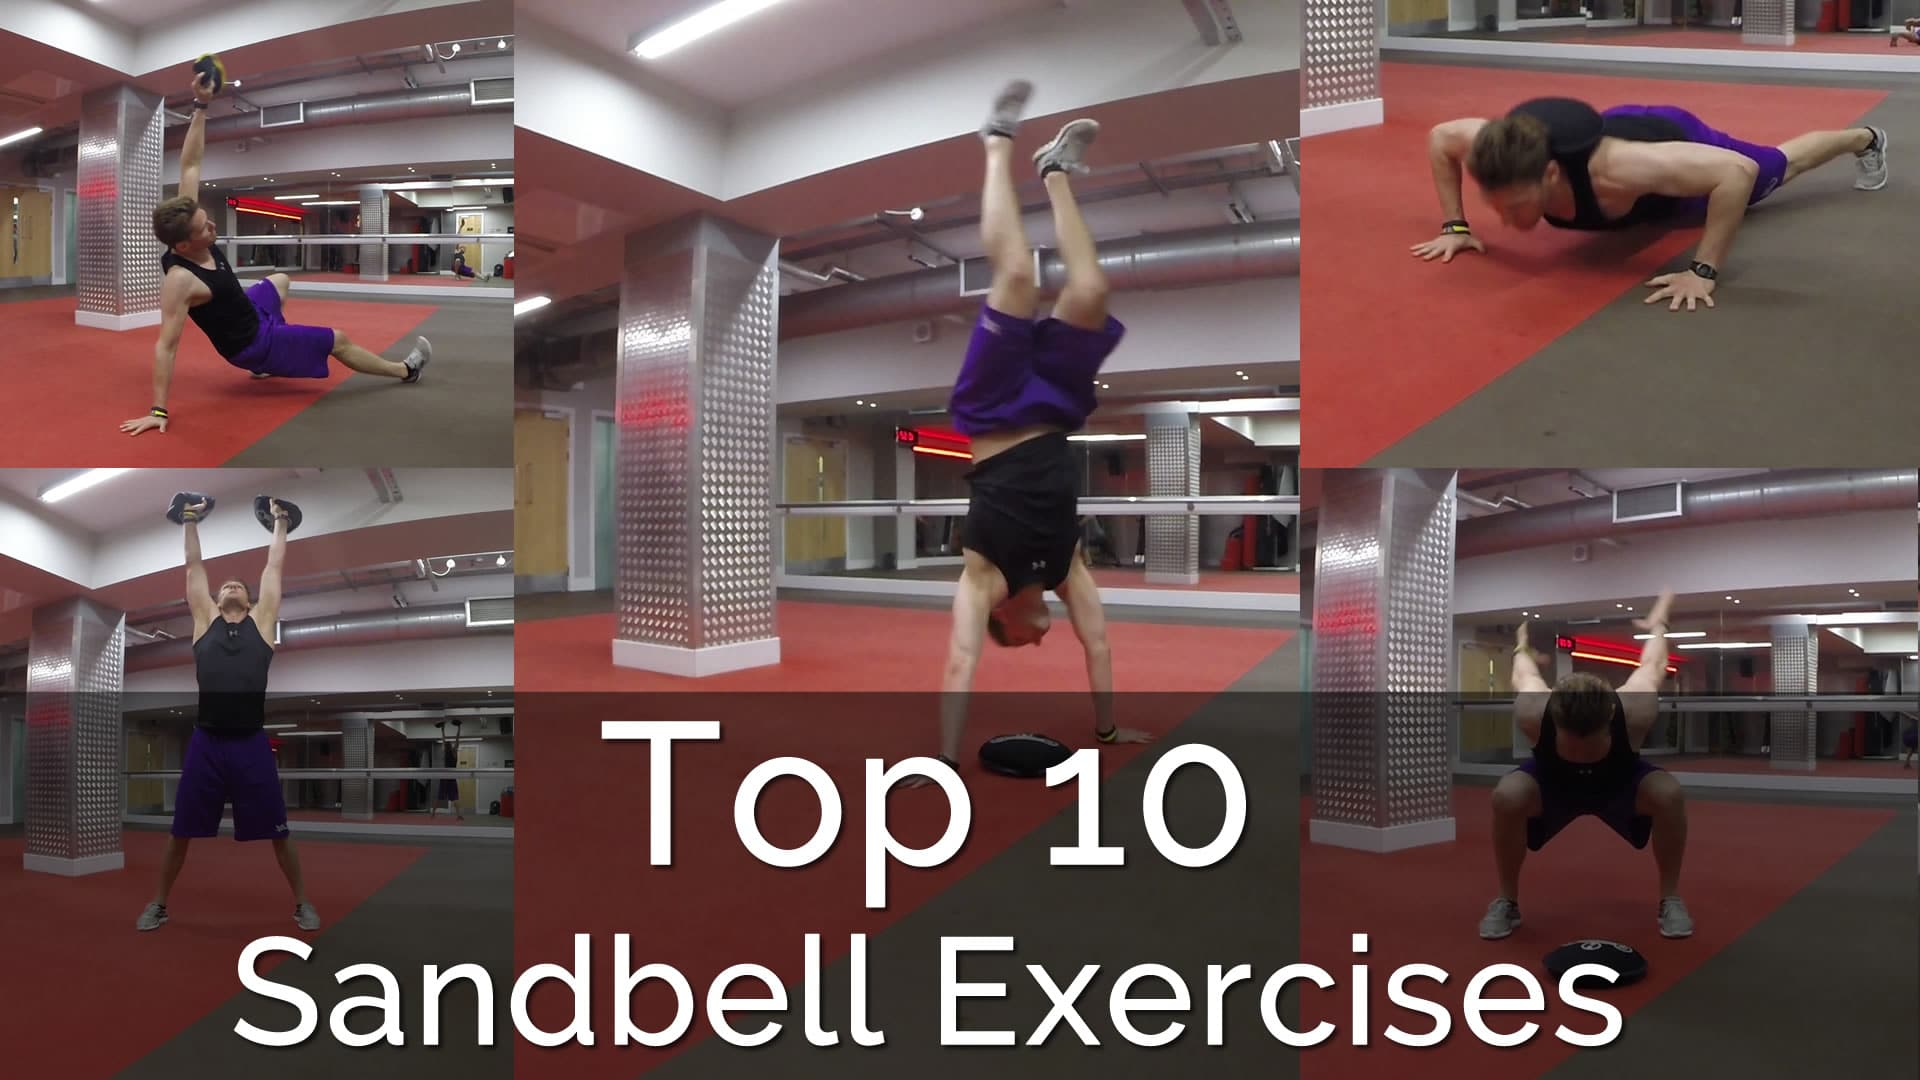 Top 10 Sandbell Exercises | Three Dimensional (3D) Training